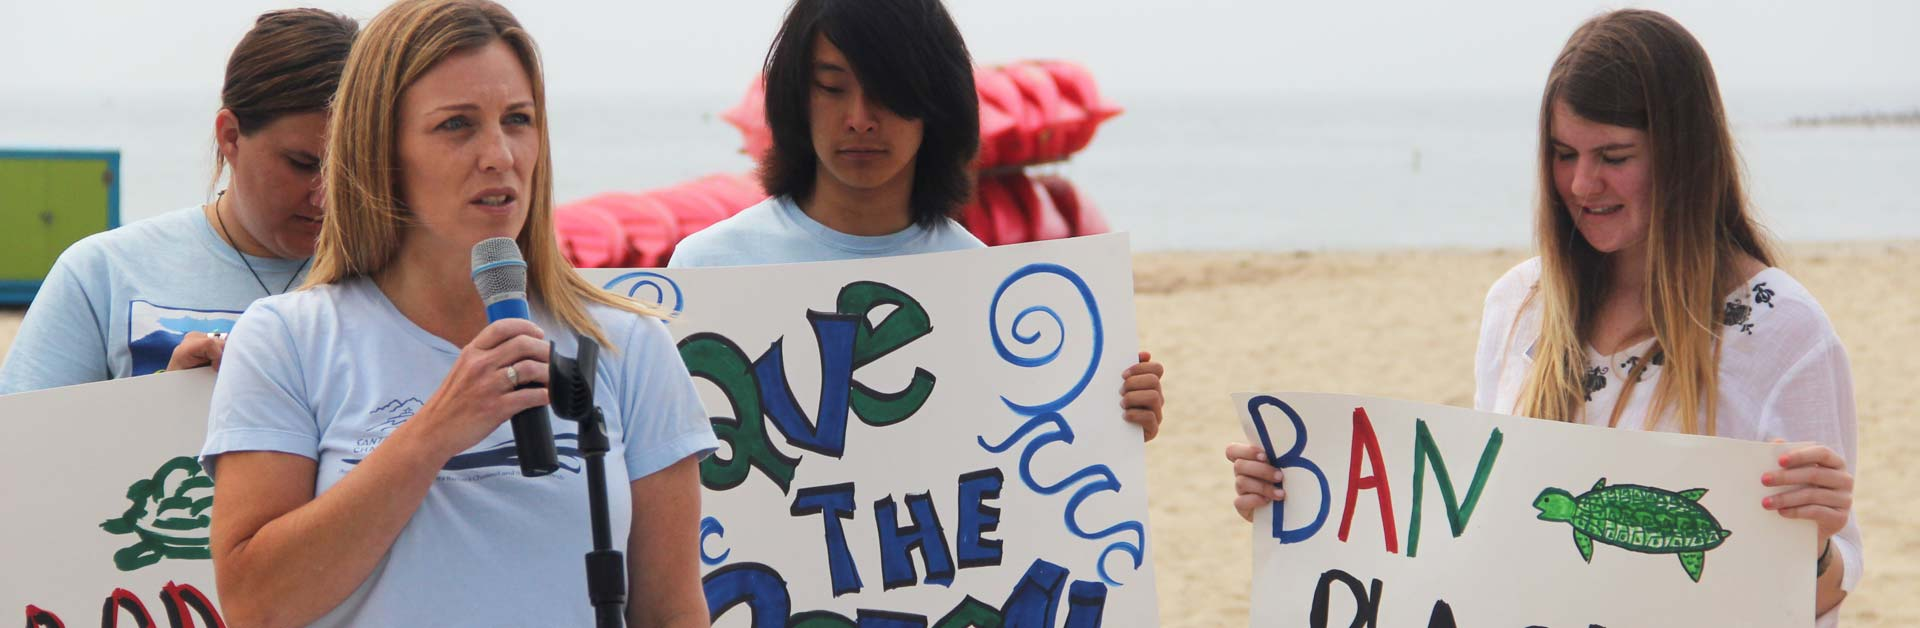 Kids holding Save the Ocean signs at a ban plastic bags rally.